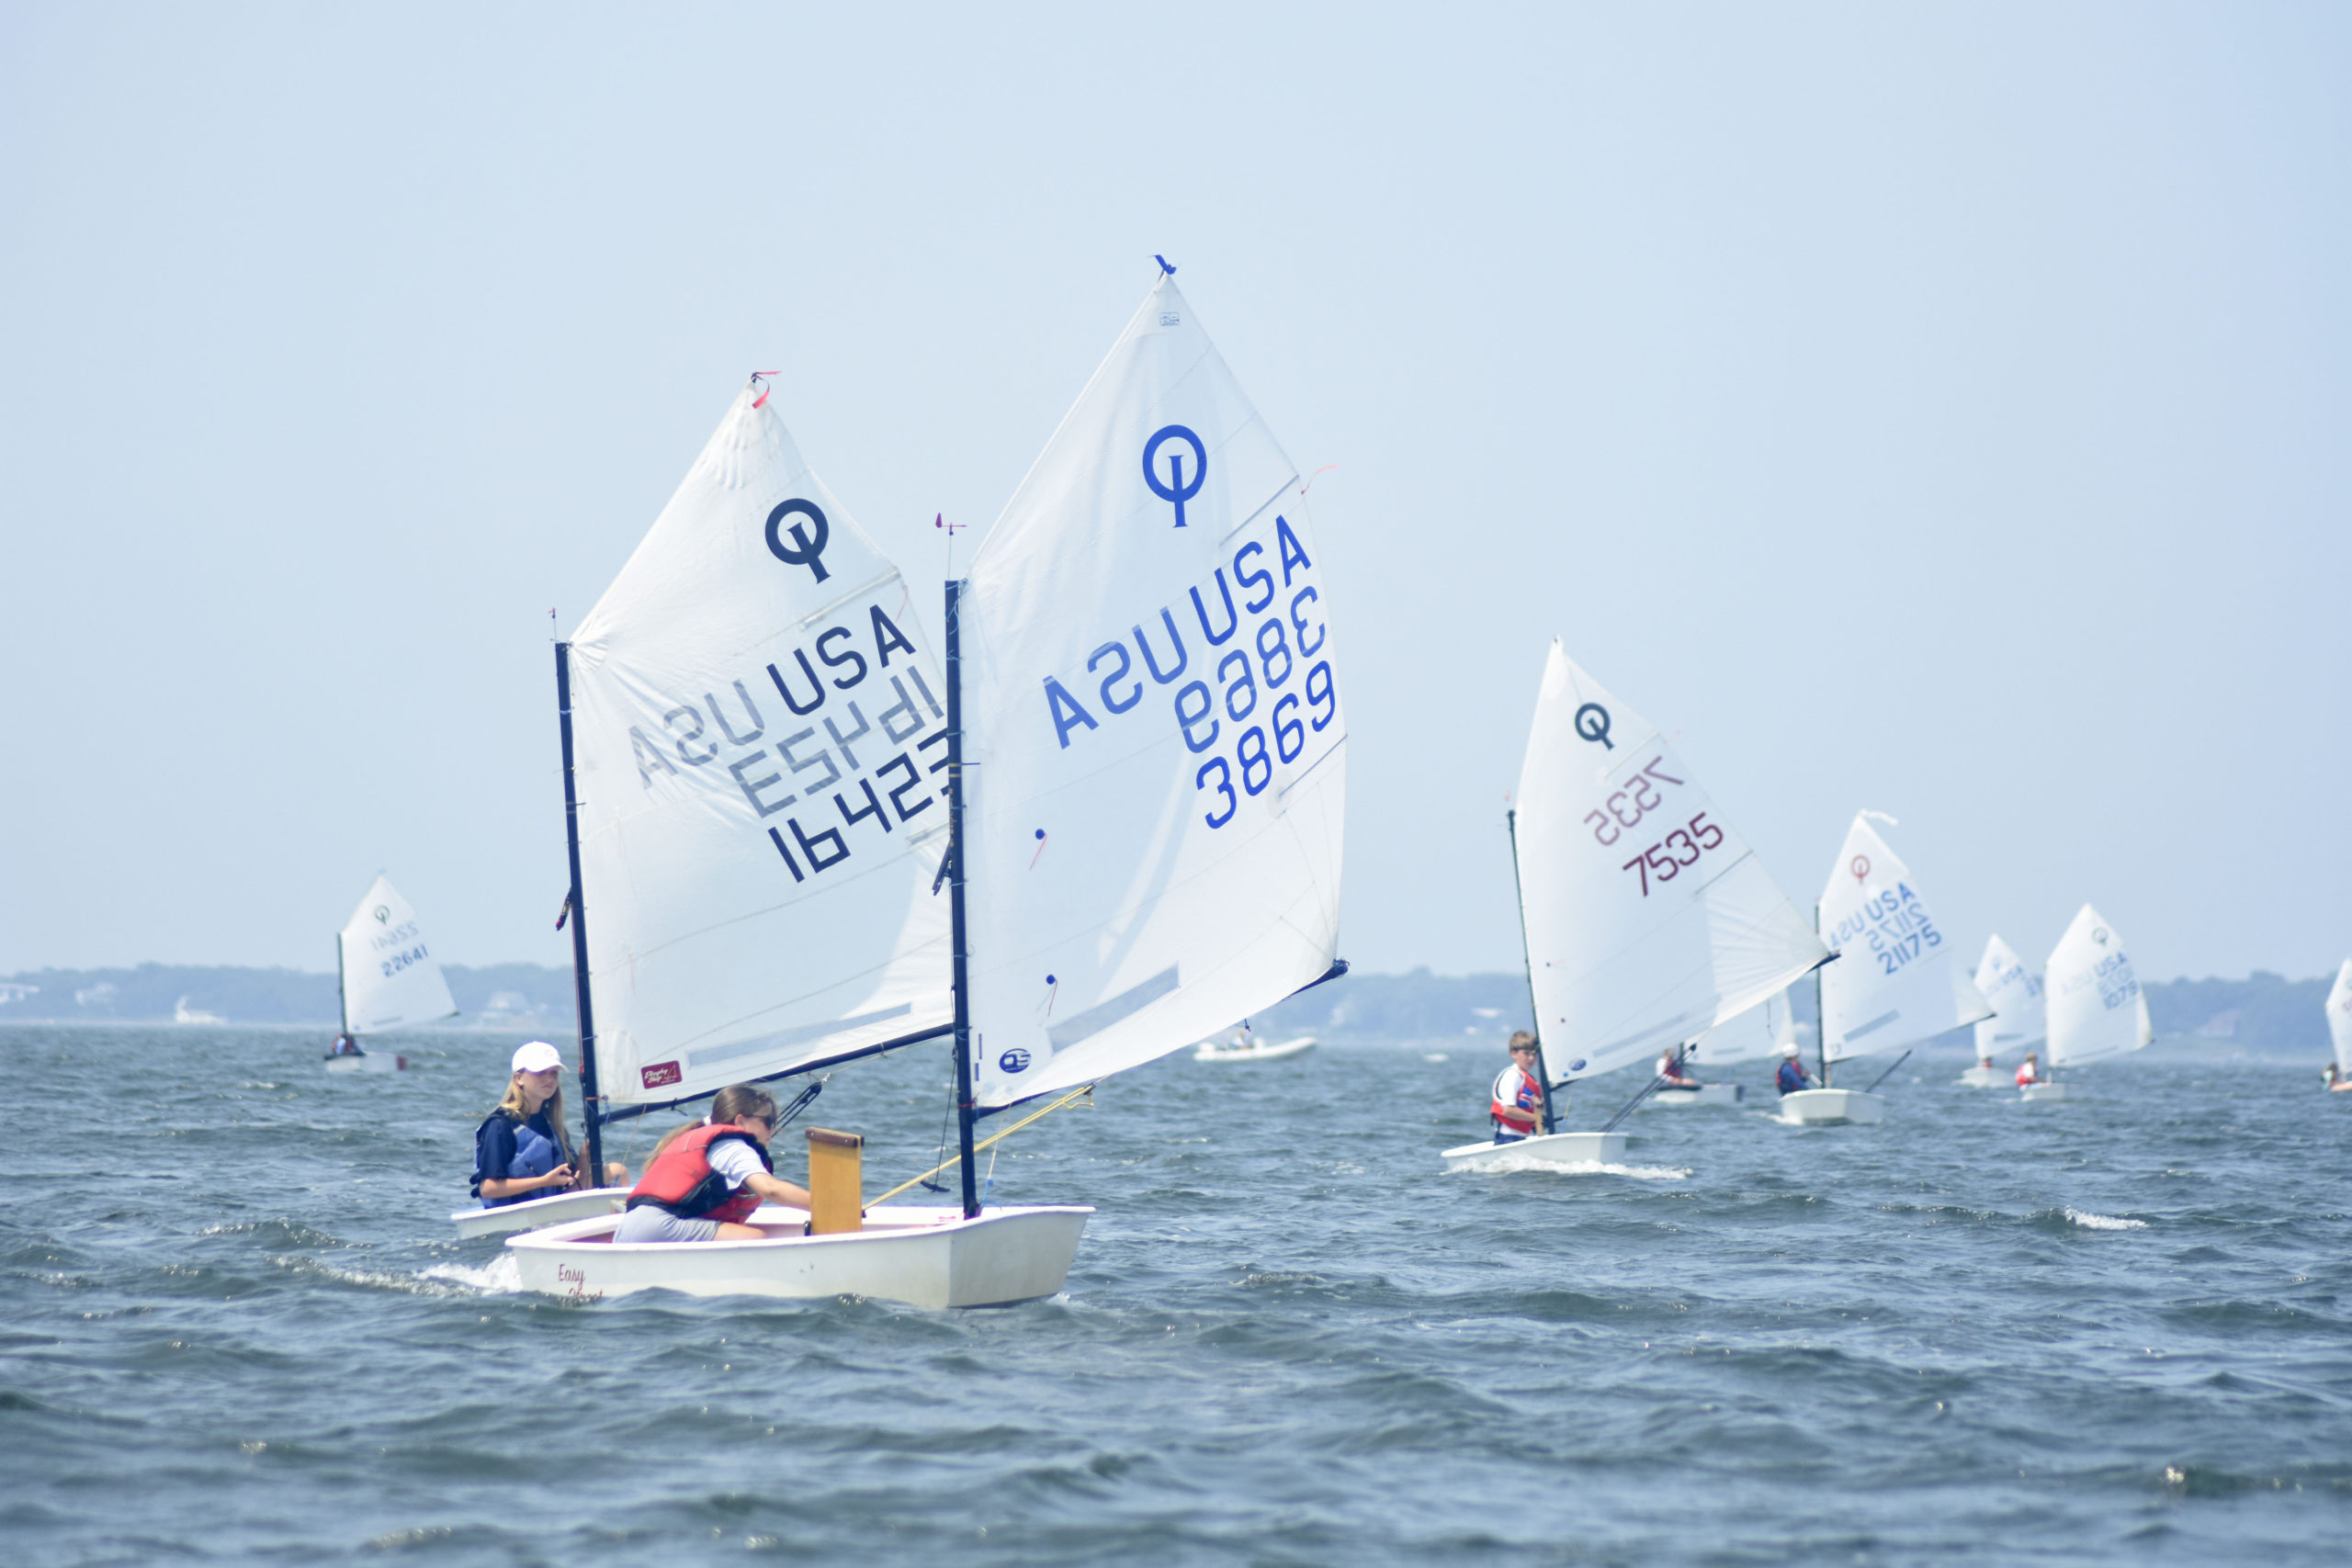 Bridget Spicer of Southold Yacht Club leads a pack of boats.